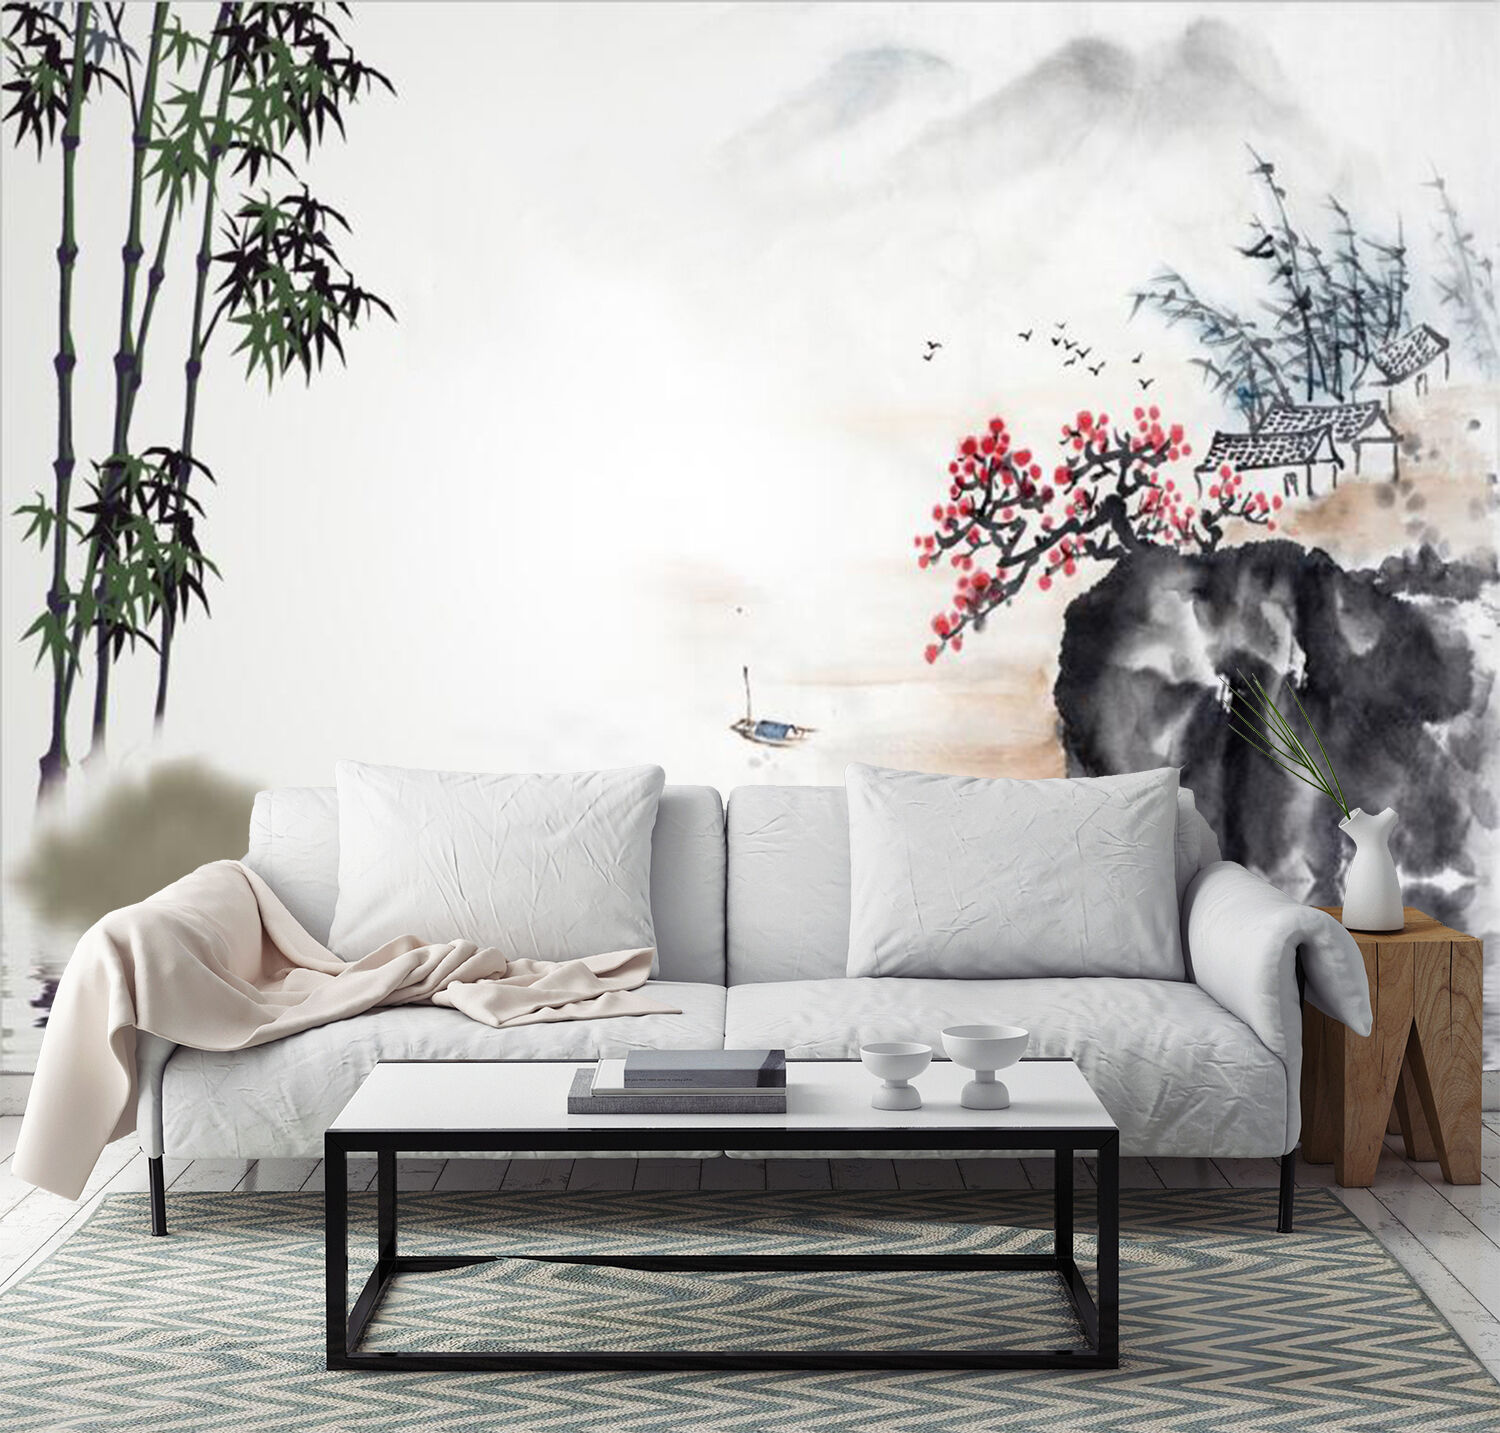 3D Watercolor painting Wall Paper Wall Print Decal Wall Deco Indoor Wall Murals